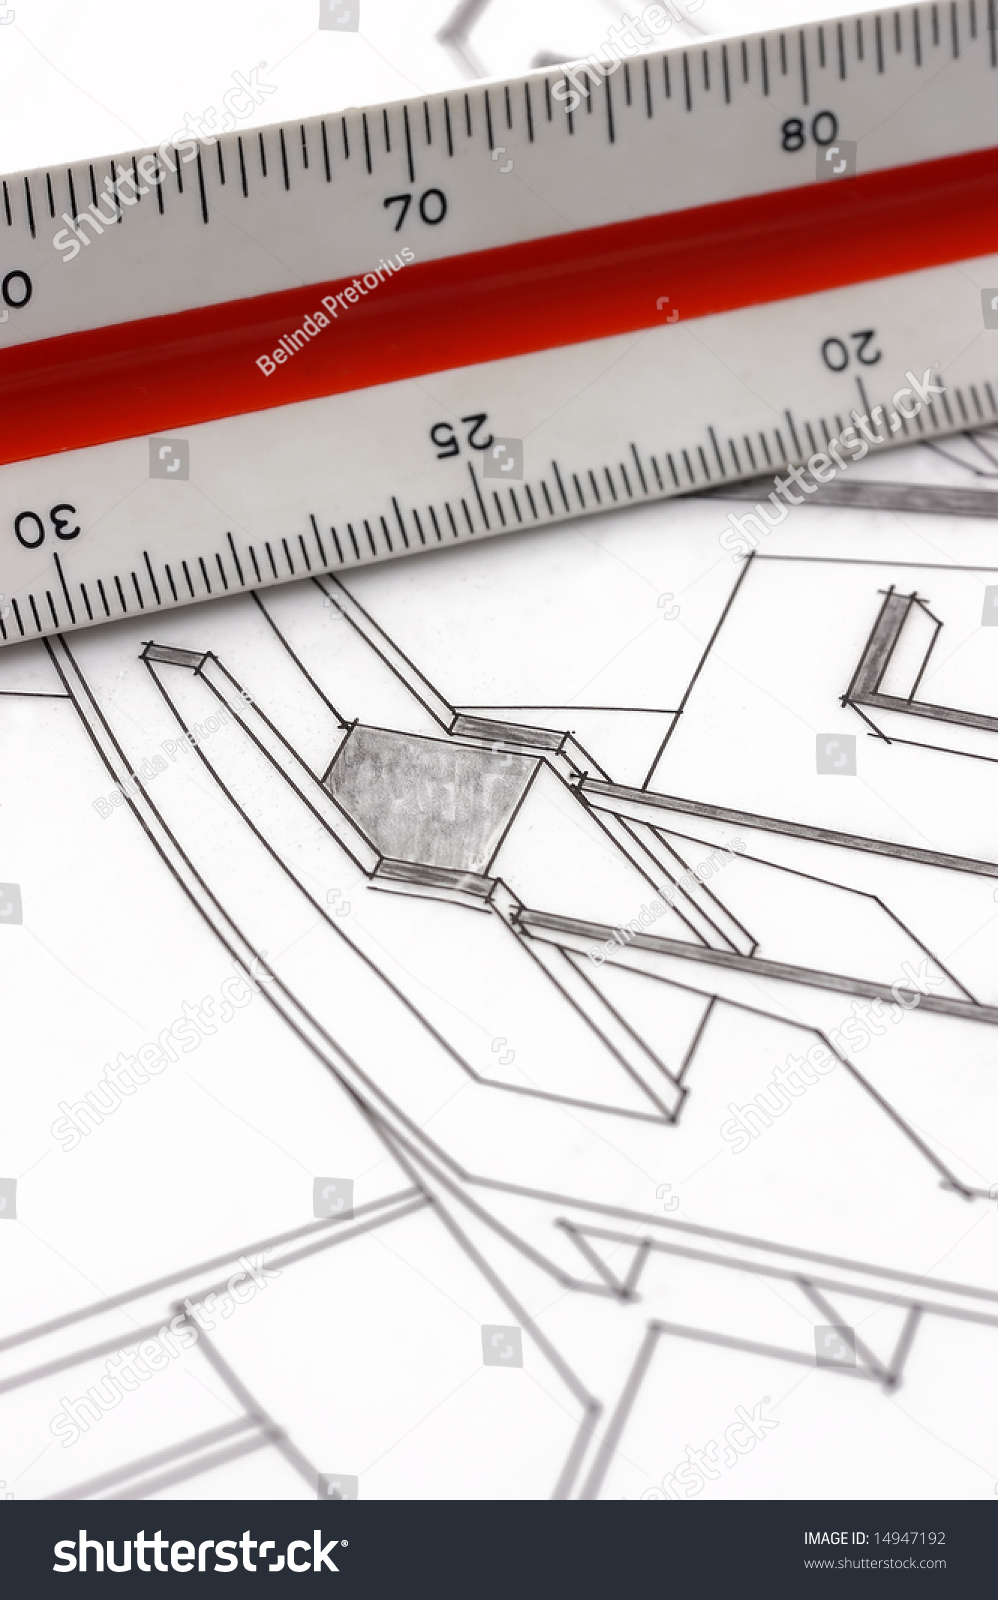 how to use a scale ruler on drawings